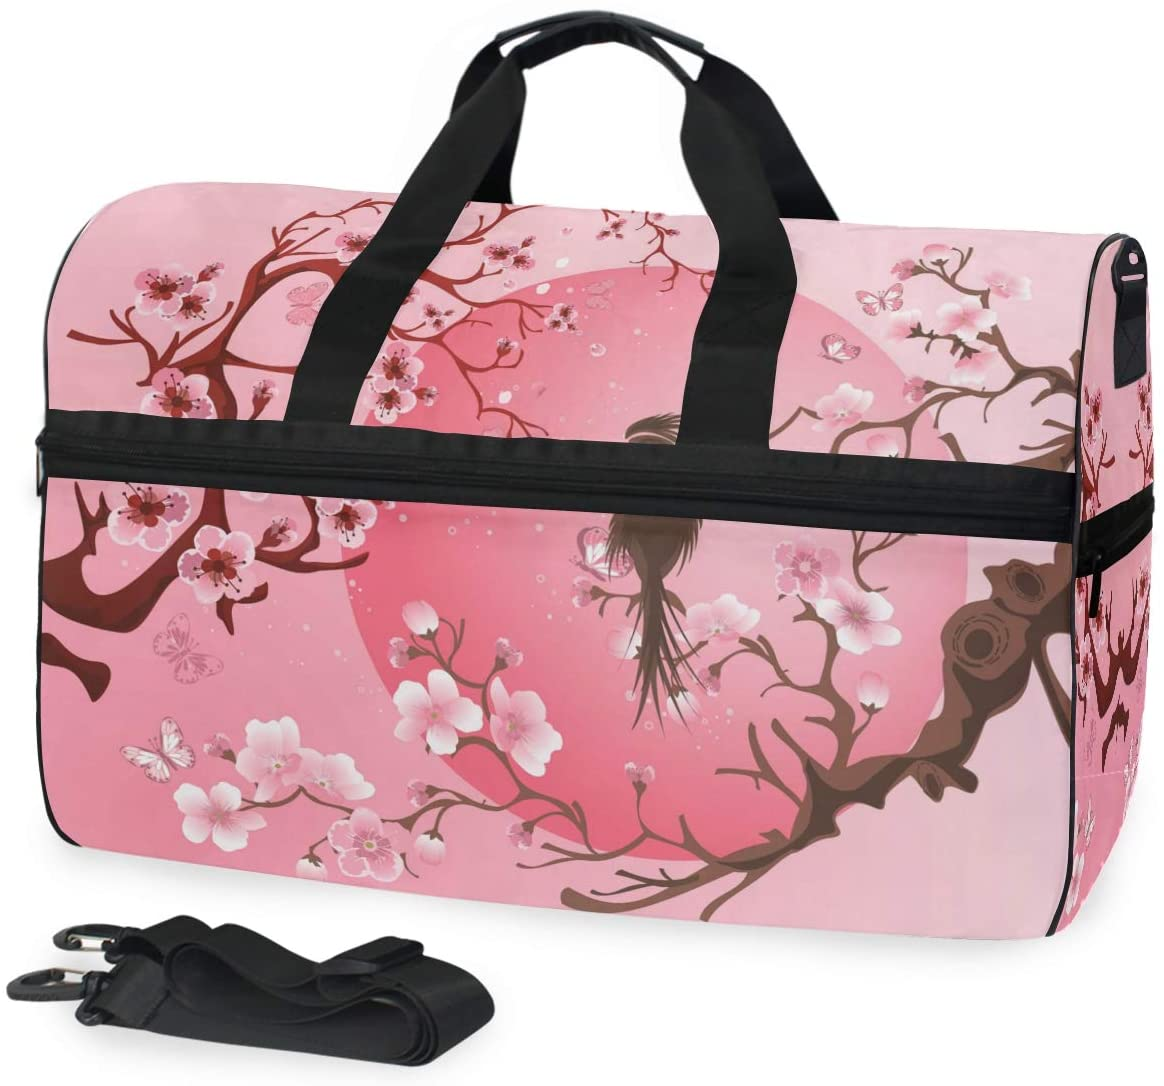 ALAZA Japanese Cherry Blossom Sakura with Bird Sports Gym Duffel Bag Travel Luggage Handbag Shoulder Bag with Shoes Compartment for Men Women